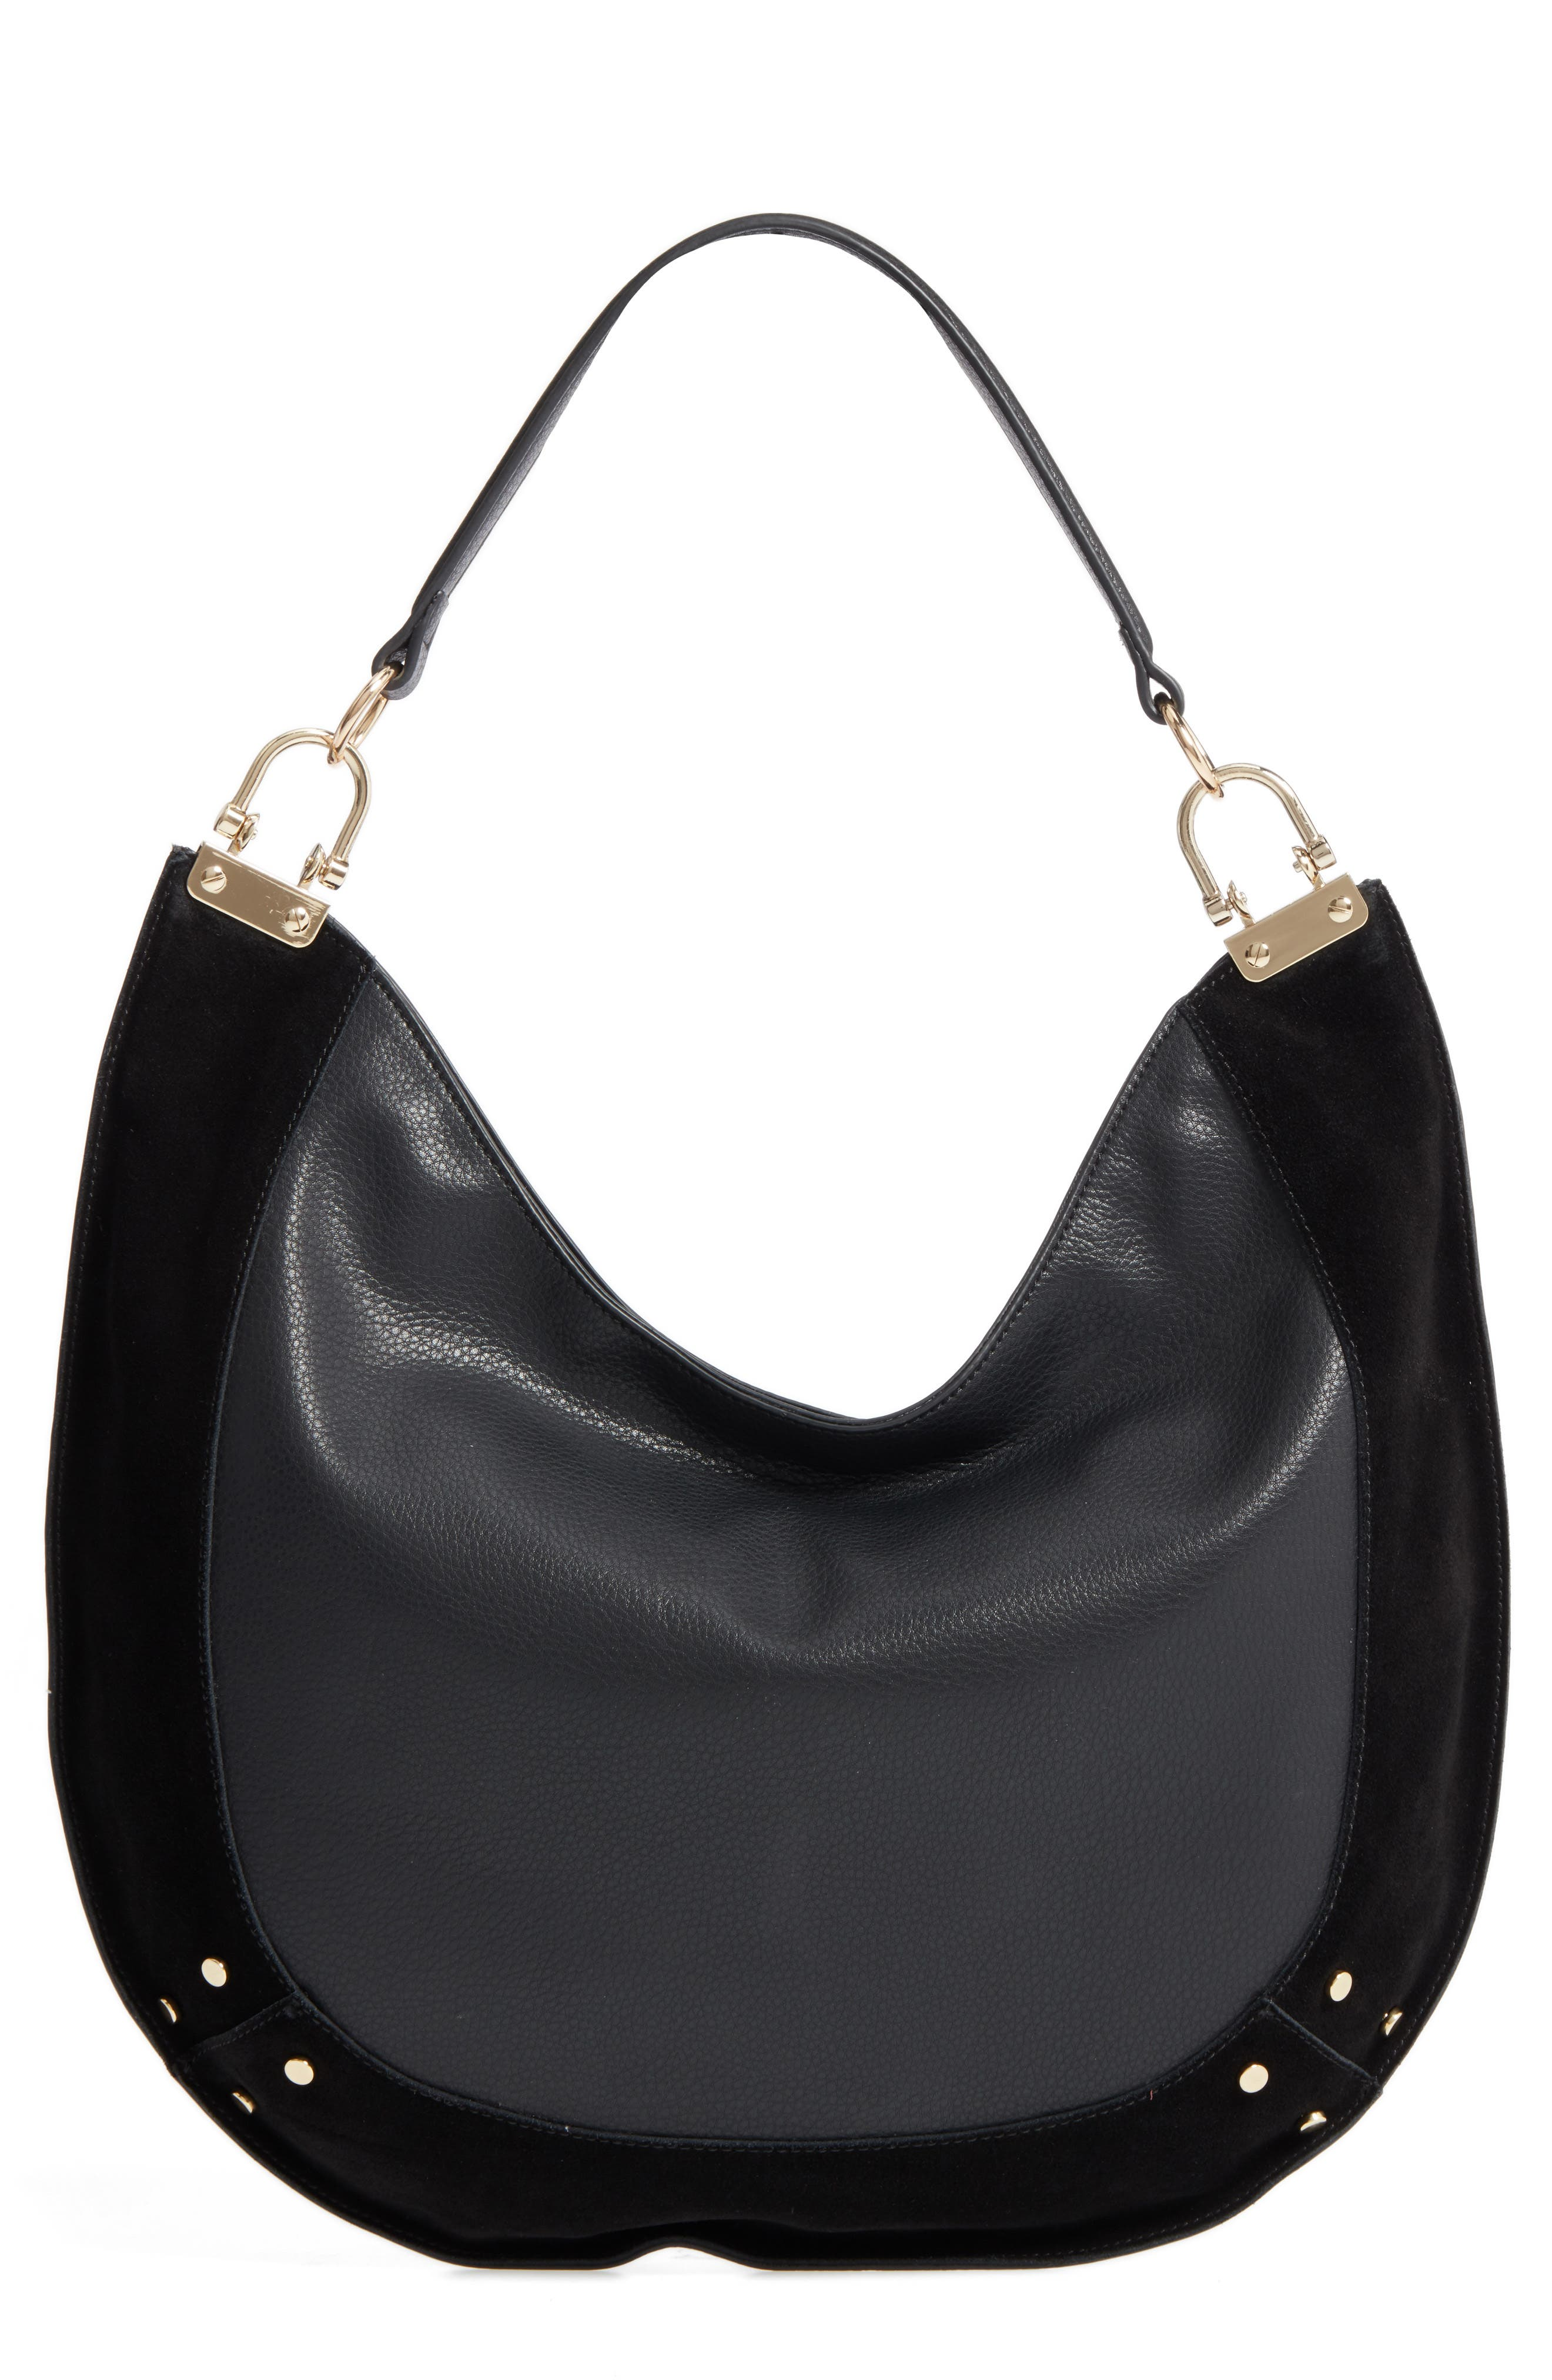 Alternate Image 1 Selected - Sole Society Blaine Suede Trim Faux Leather Hobo